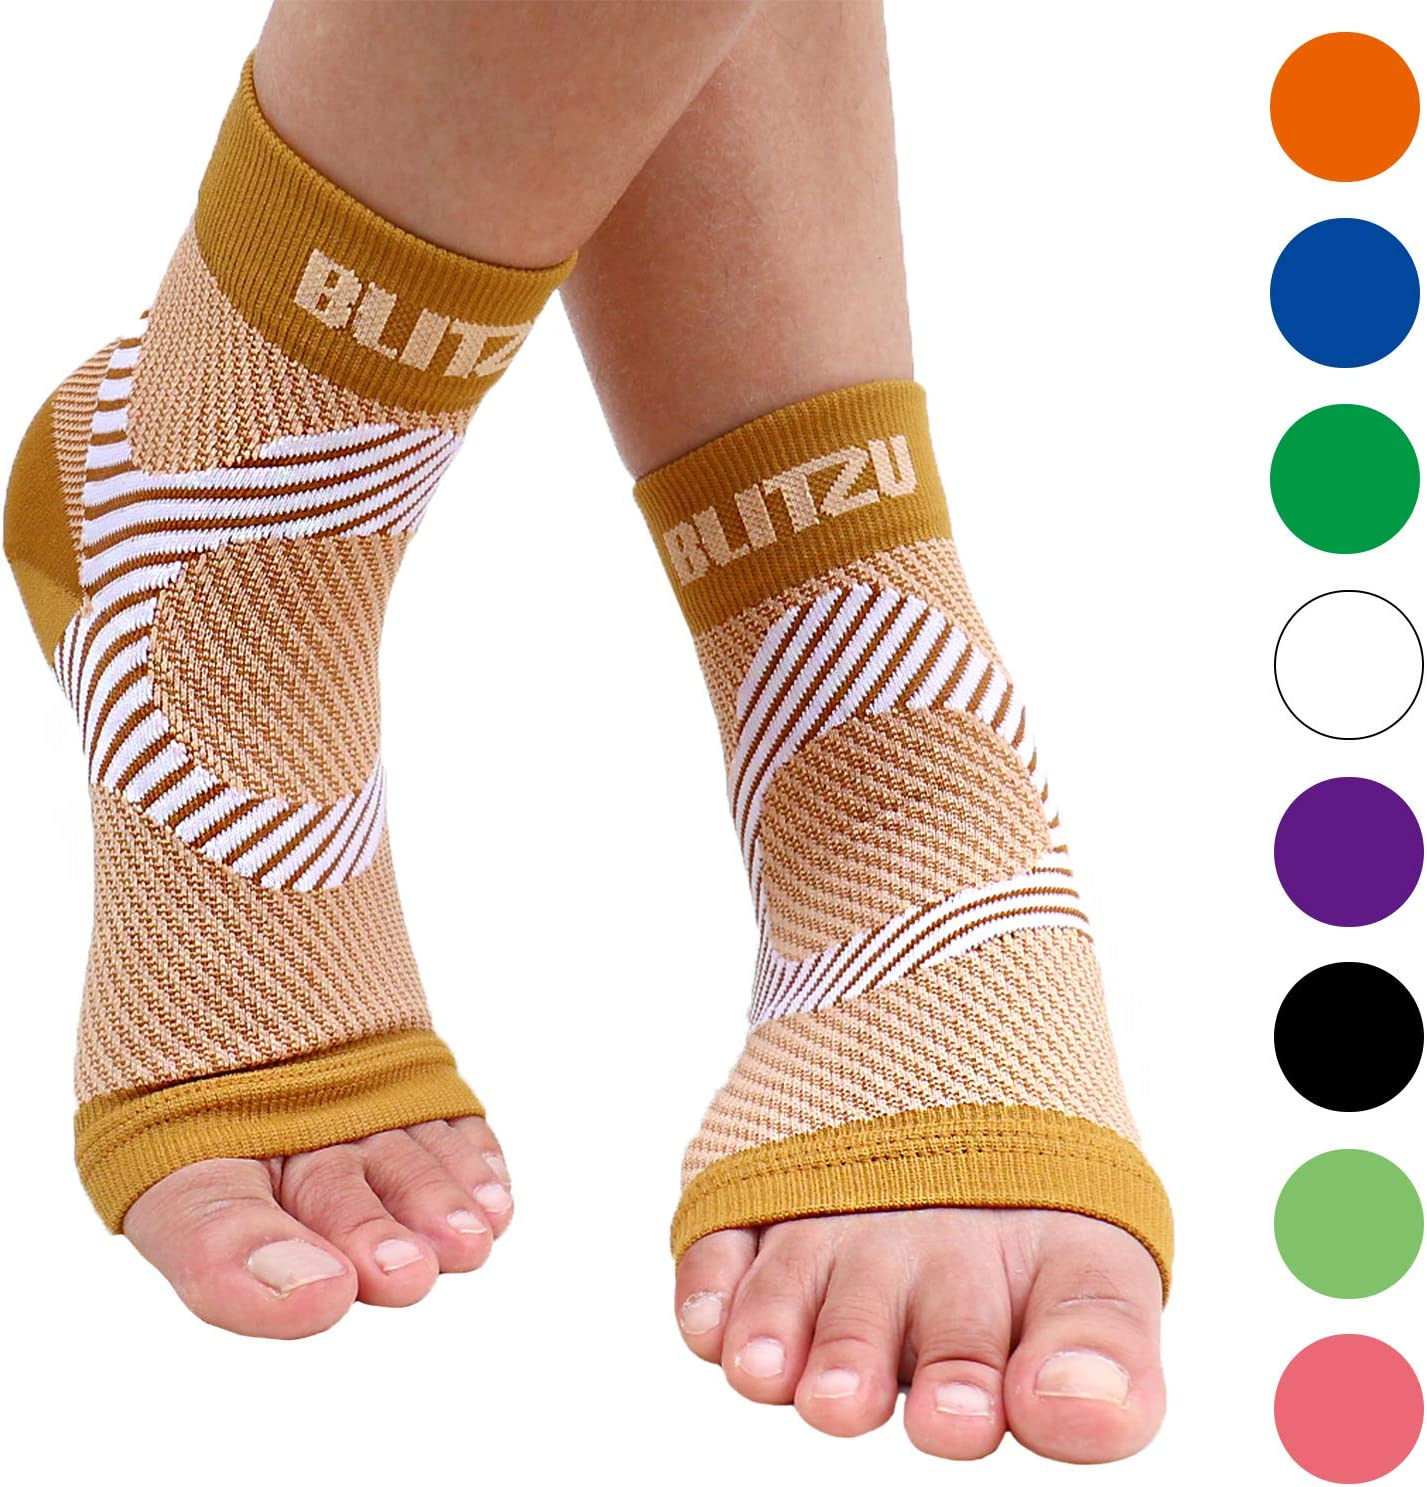 BLITZU Plantar Fasciitis Compression Socks For Women & Men - Best Ankle and Nano Sleeve For Everyday Use - Provides Foot & Arch Support. Heel Pain, and Achilles Tendonitis Relief. NUDE S/M